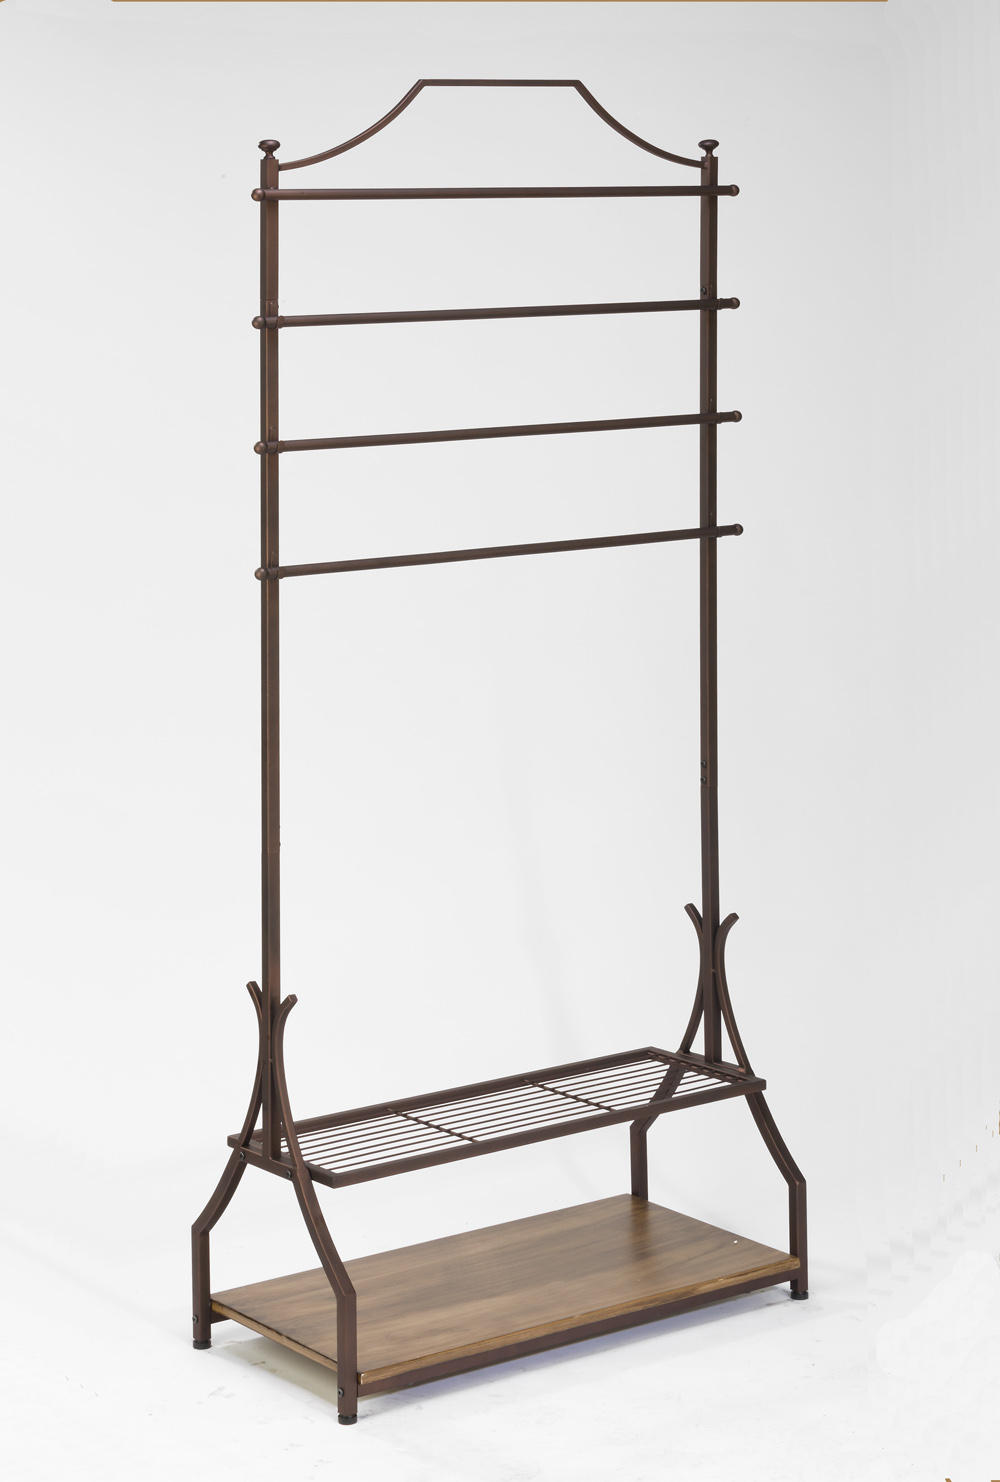 Floor Rack with Wood Base (Scarf, Purse & Fashion Displays)